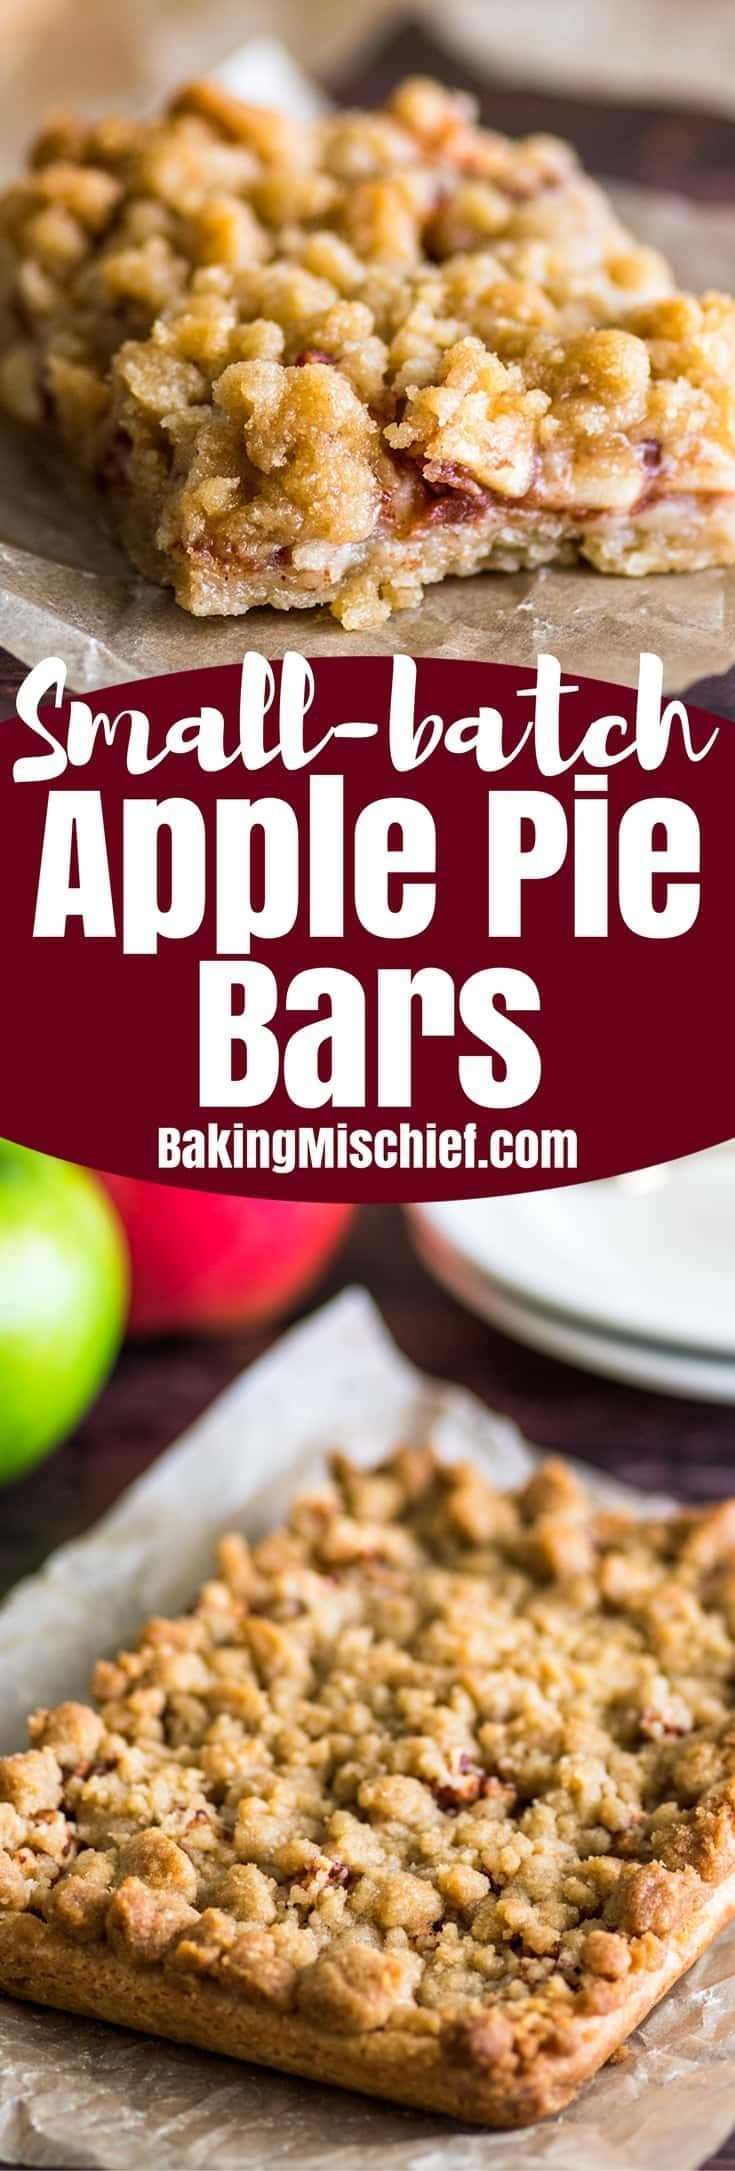 You will love these easy Small-batch Apple Pie Bars with their buttery shortbread base, gooey apple cinnamon center, and crunchy streusel topping. | #Dessert | #AppleDesserts | #EasyDesserts |